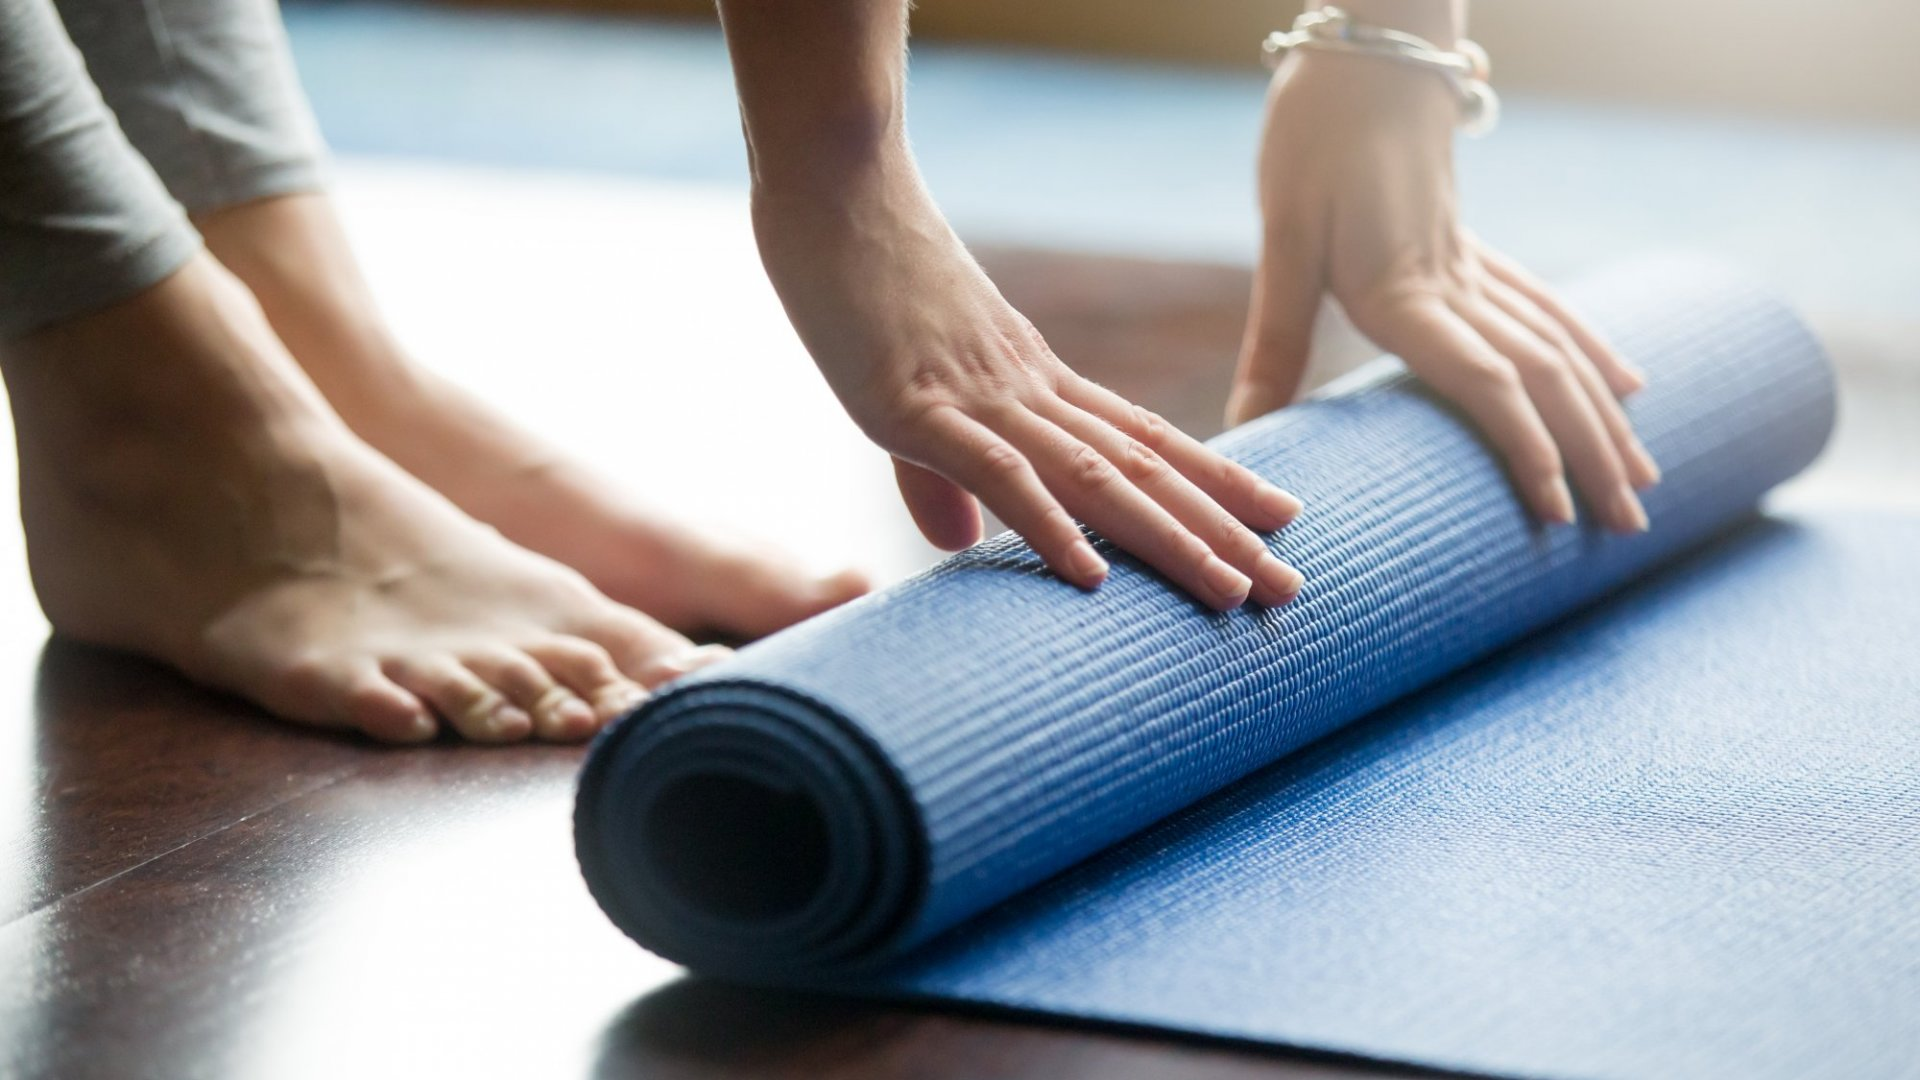 Workplace Wellness Programs Aren't Working. Here's What to Do Instead